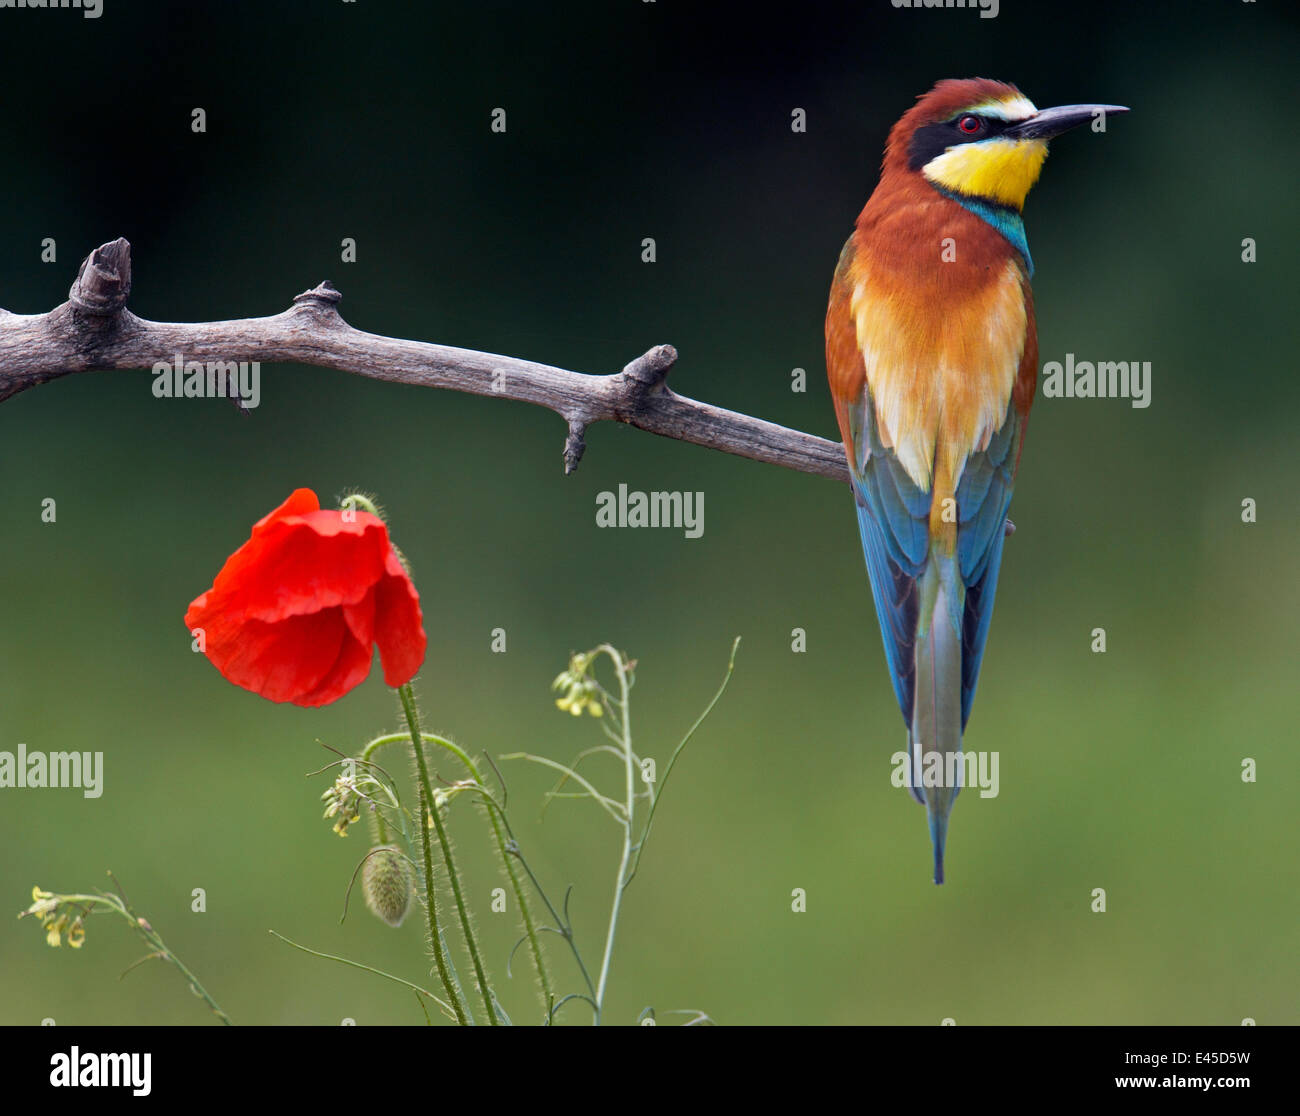 European Bee-eater (Merops apiaster) perched beside Poppy flower, Pusztaszer, Hungary, May 2008 - Stock Image